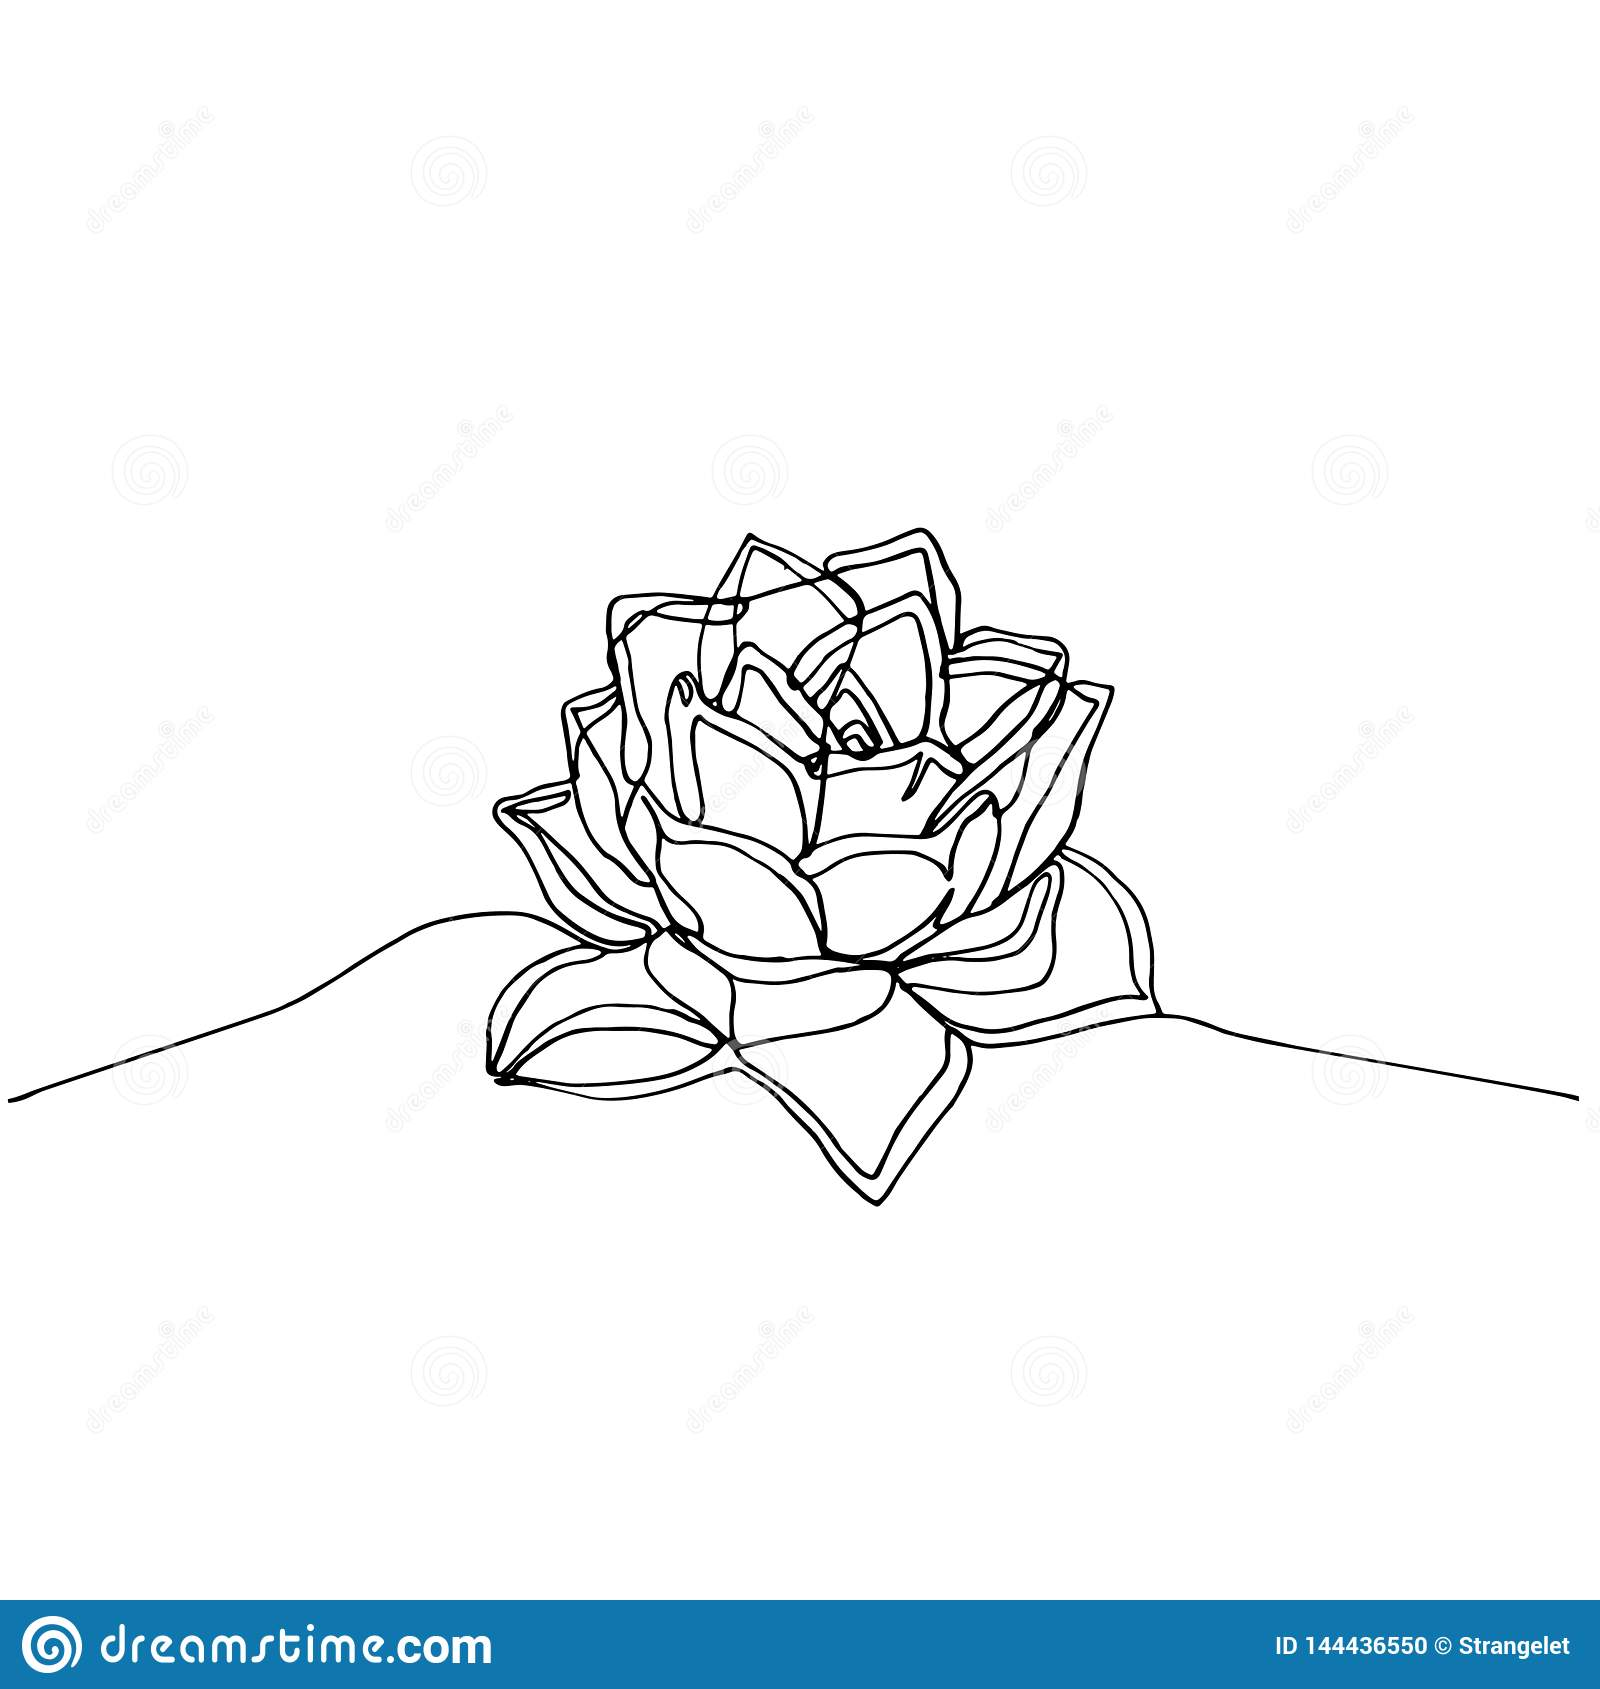 Hand Drawn Minimalistic Succulent One Single Continuous Black Line Simple Drawing Stock Illustration Illustration Of White Doodle 144436550